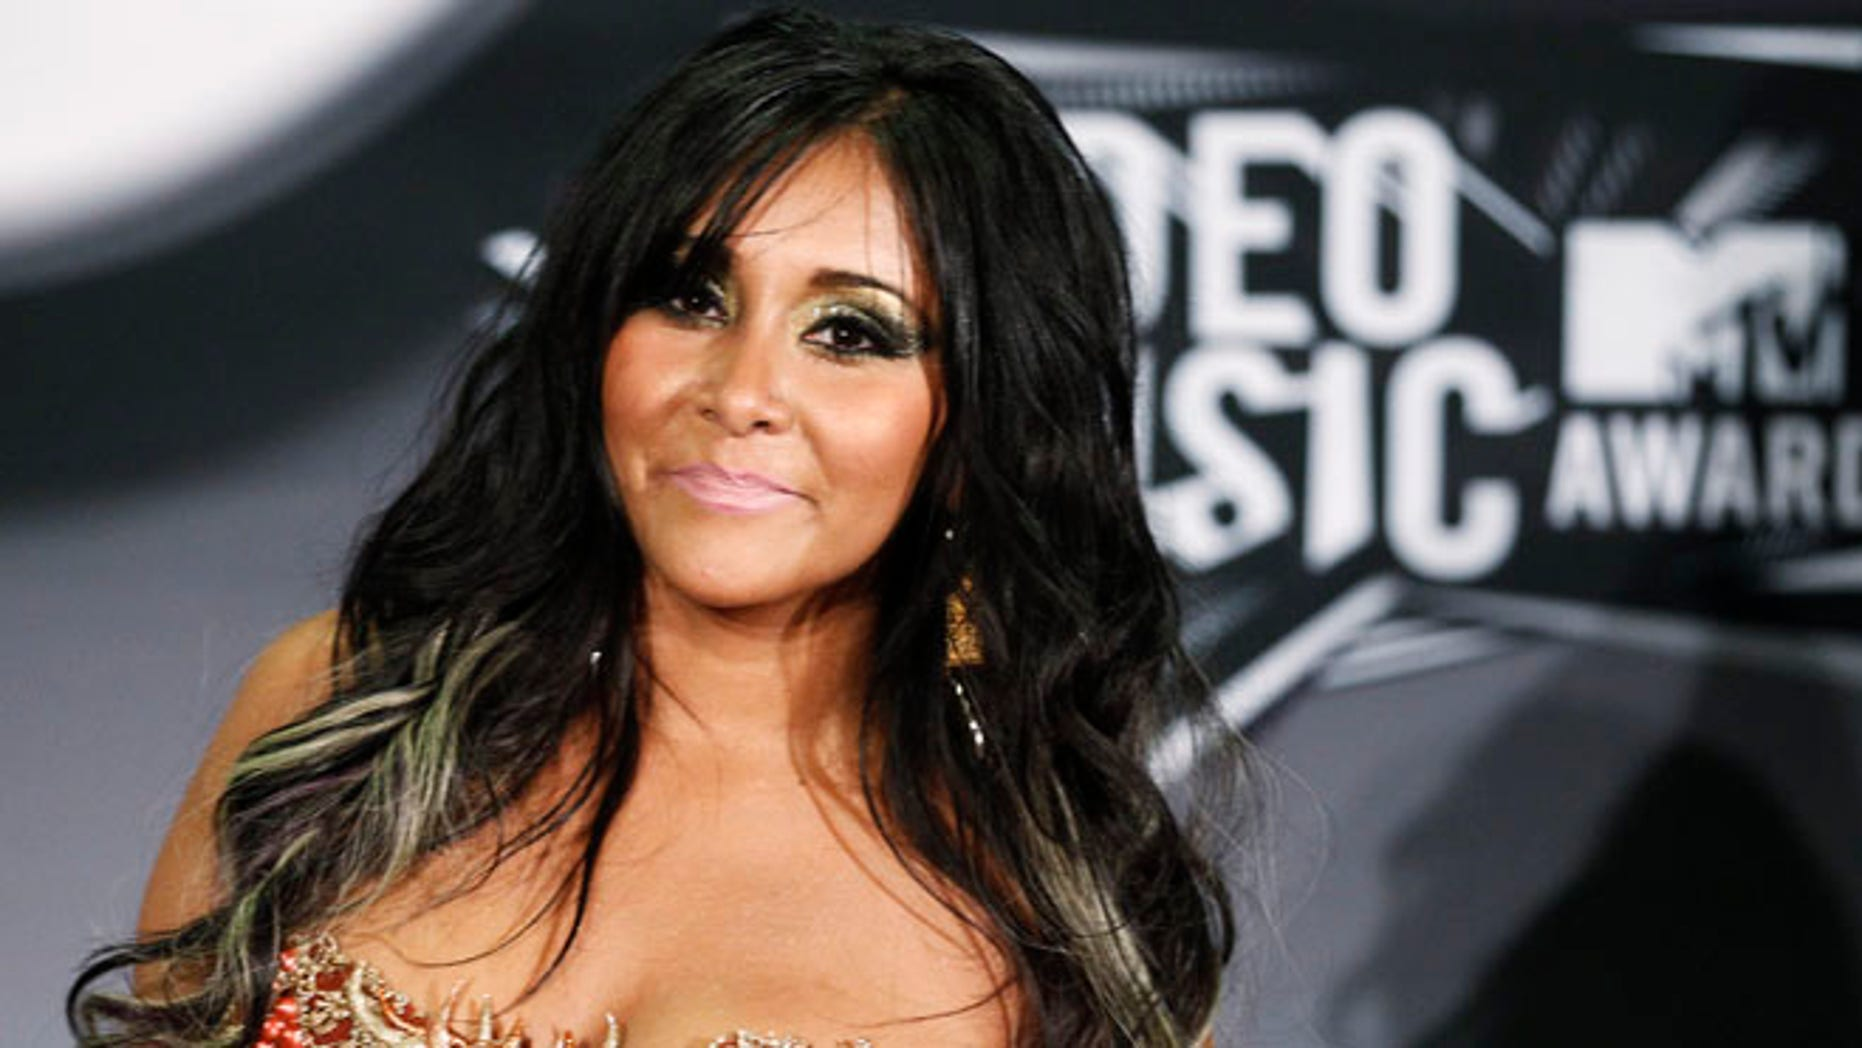 """Aug. 28, 2011: Nicole """"Snooki"""" Polizzi from the MTV reality series """"Jersey Shore"""" poses at the 2011 MTV Video Music Awards in Los Angeles."""